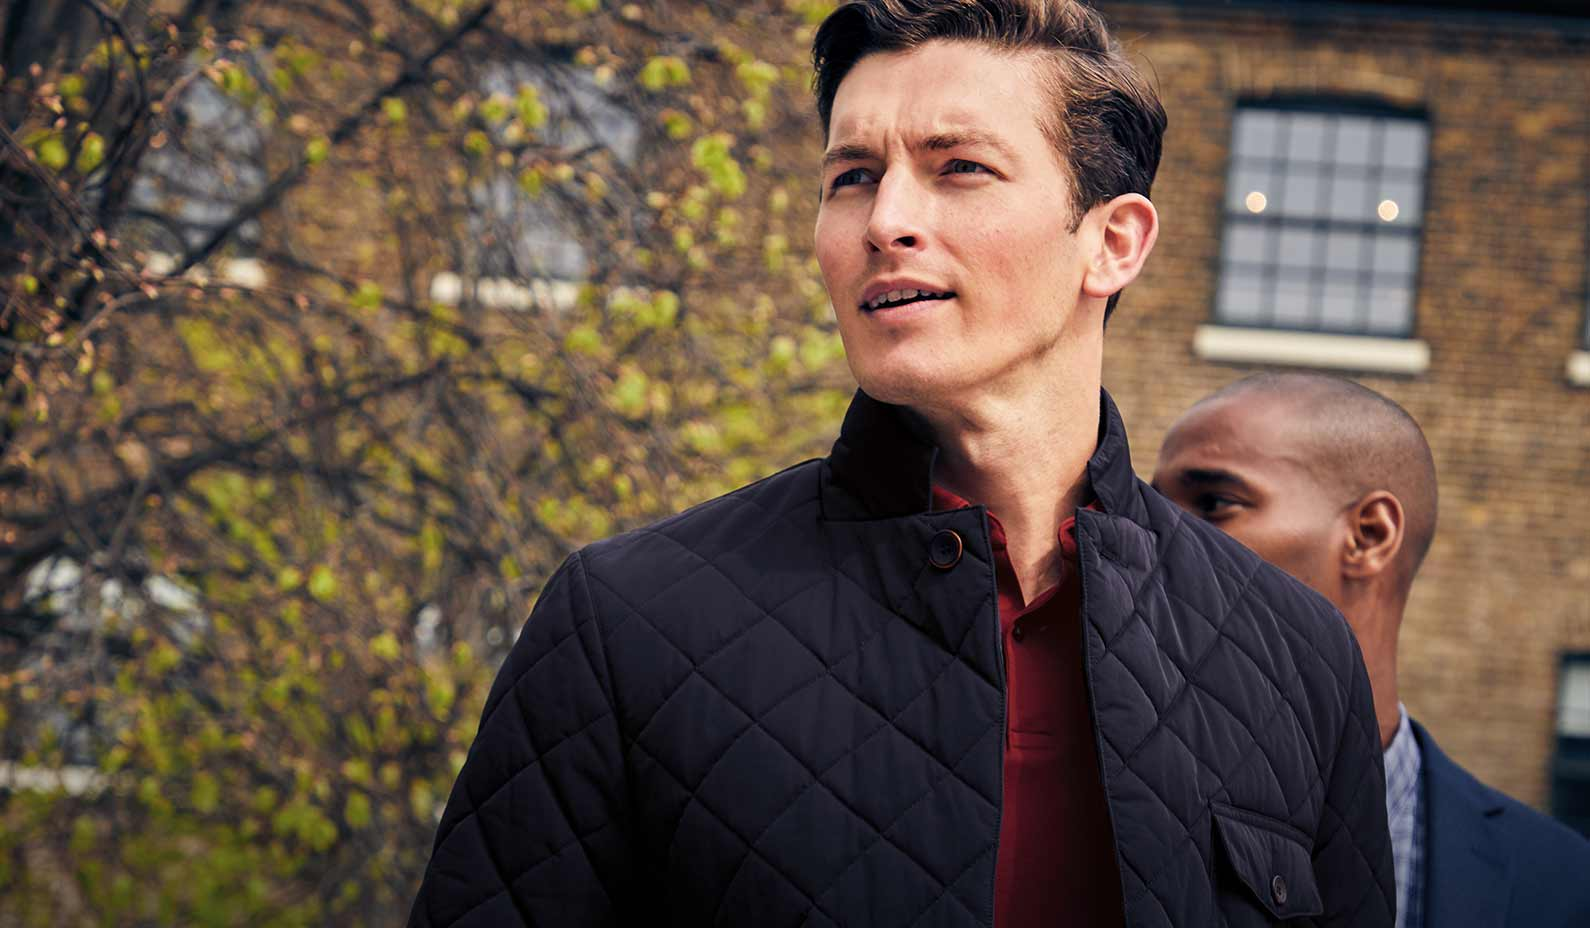 Man in navy quilted jacket and burgundy jersey